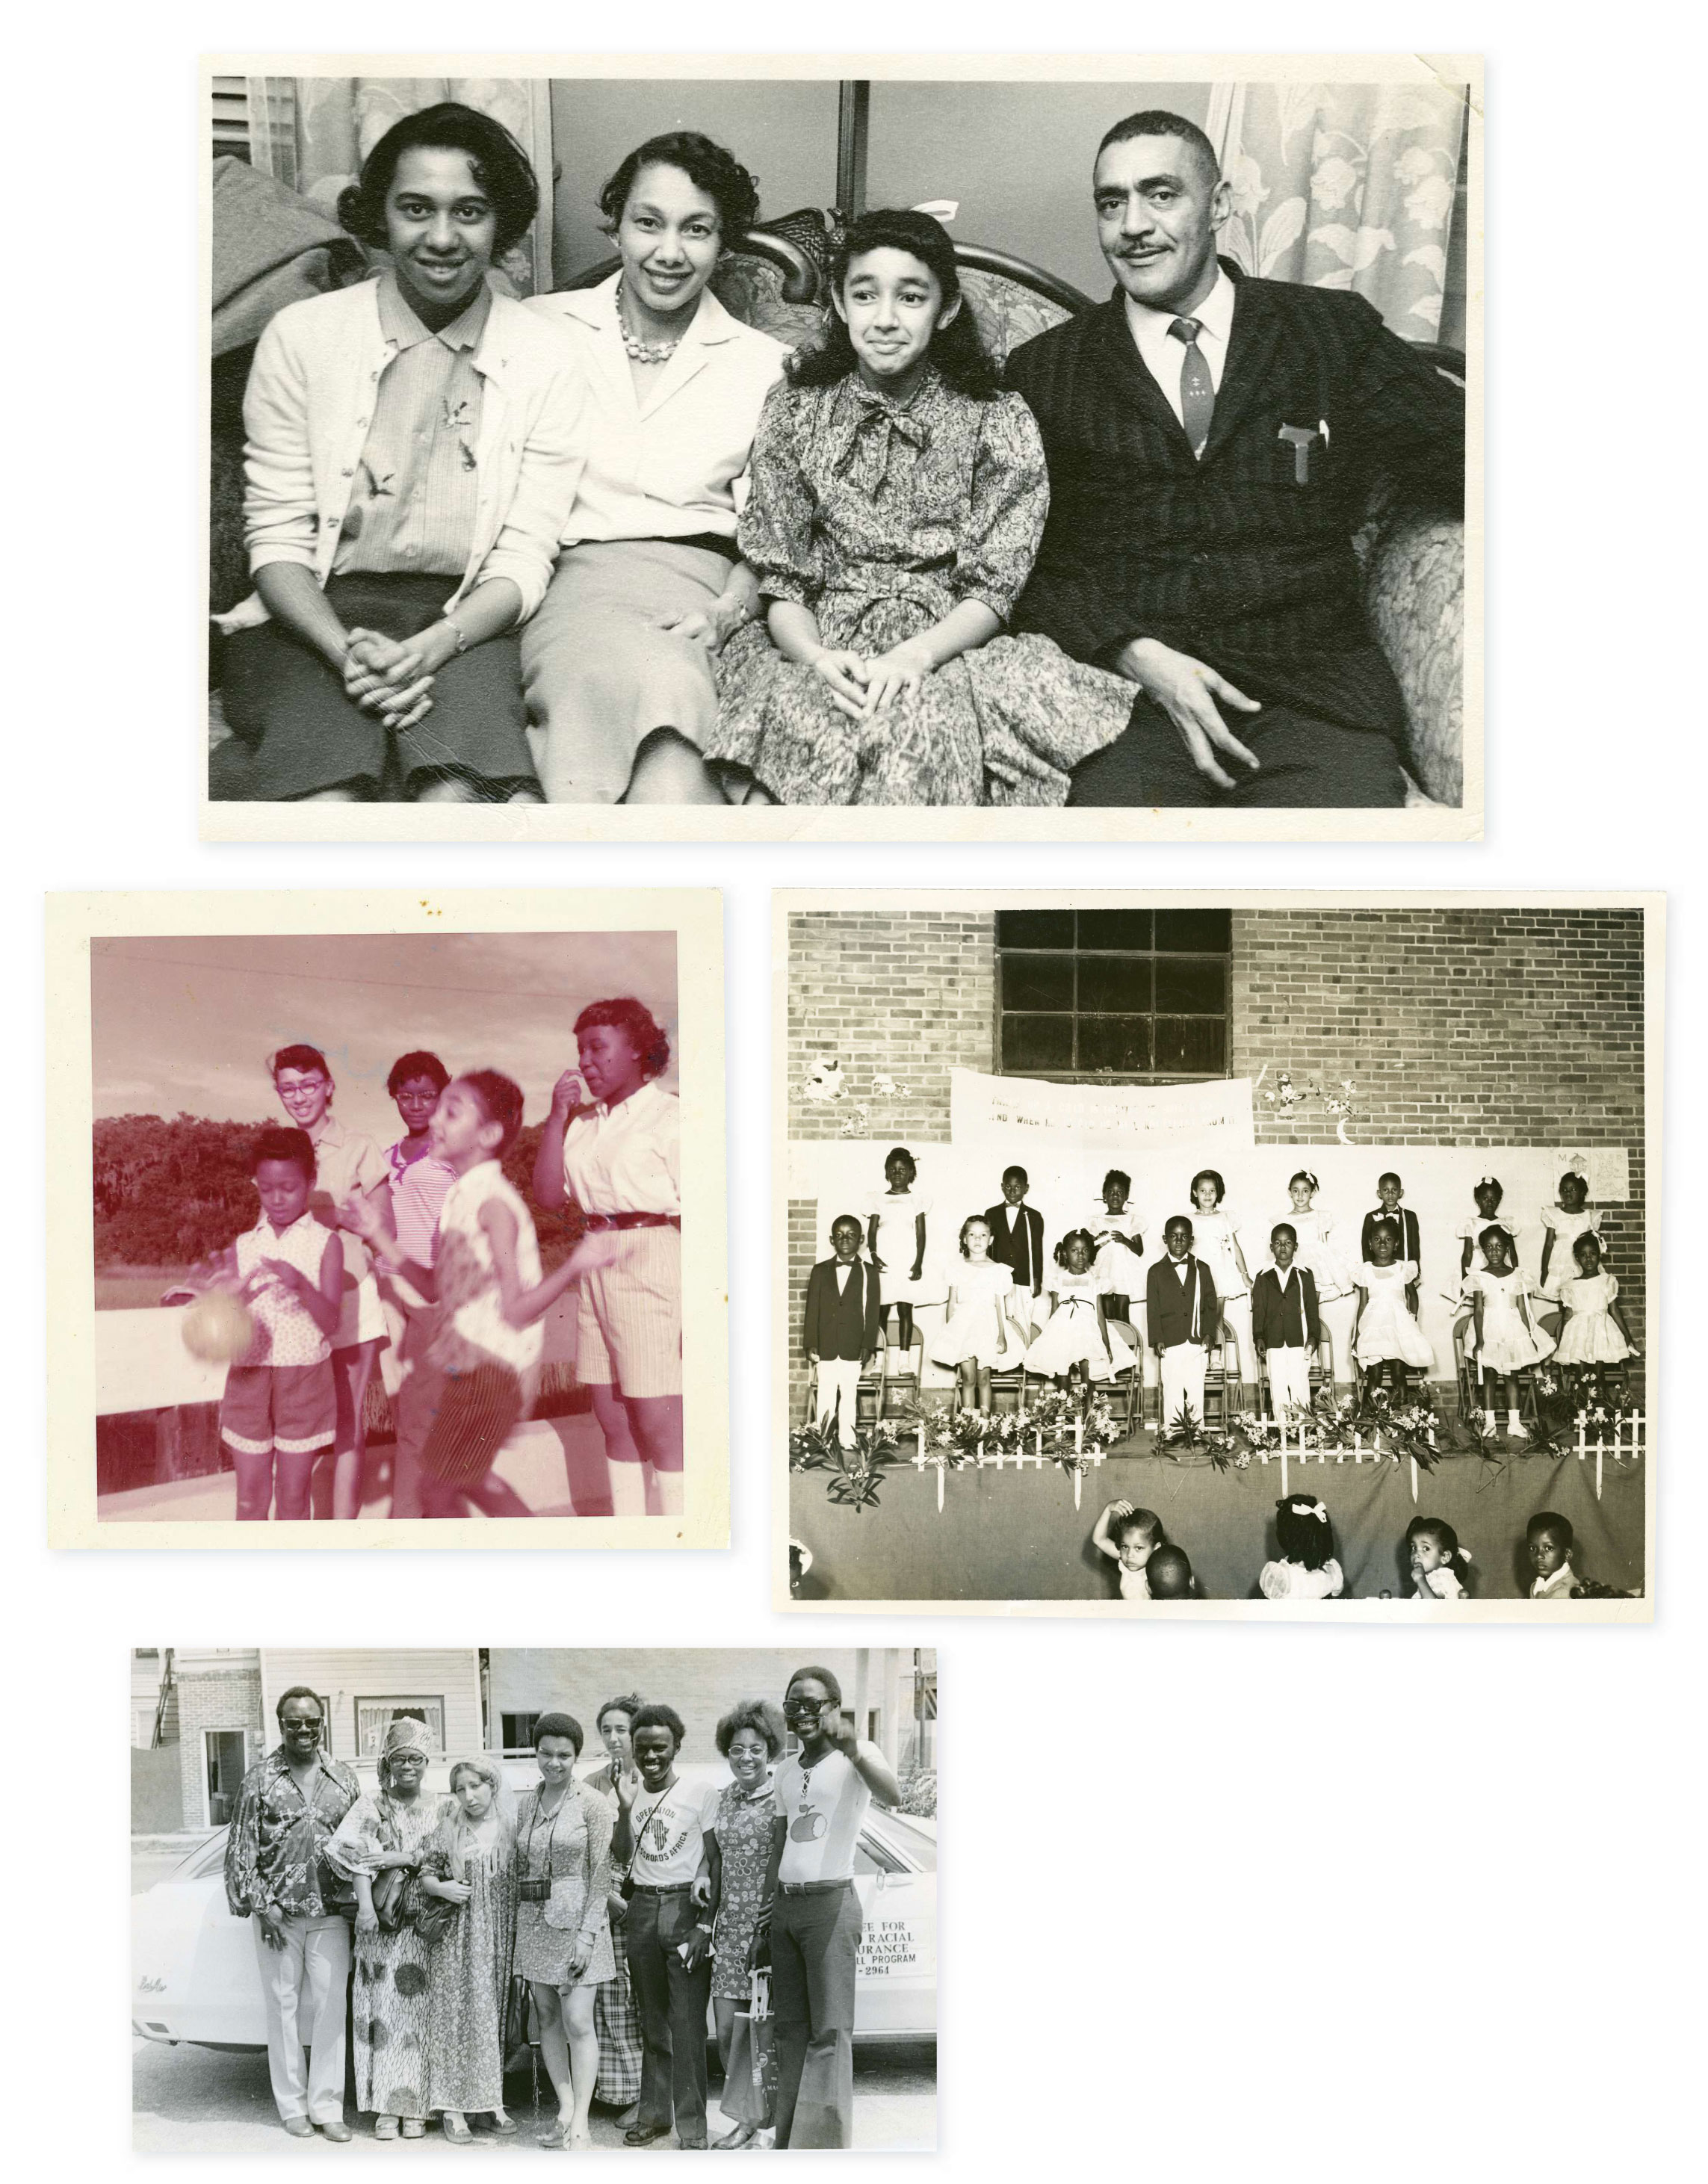 """Family Ties: The Browns lived amid a vibrant black middle-class neighborhood on the peninsula. """"There were black doctors, lawyers, business owners, well-to-do people and poor, too, but it was an intact community,"""" says Millicent. (Clockwise from top) With her parents, MaeDe and J. Arthur, and sister Minerva, the original plaintiff in the school suit; at an A. B. Rhett School program in 1954; working with Operation Crossroads Africa in the 1970s (the program was sponsored by the State Department to expose Africans to Lowcountry culture); with older sister Joenelle (far left, back) circa 1957 at a black-owned resort in the Catskill Mountains frequented by the Brown family"""